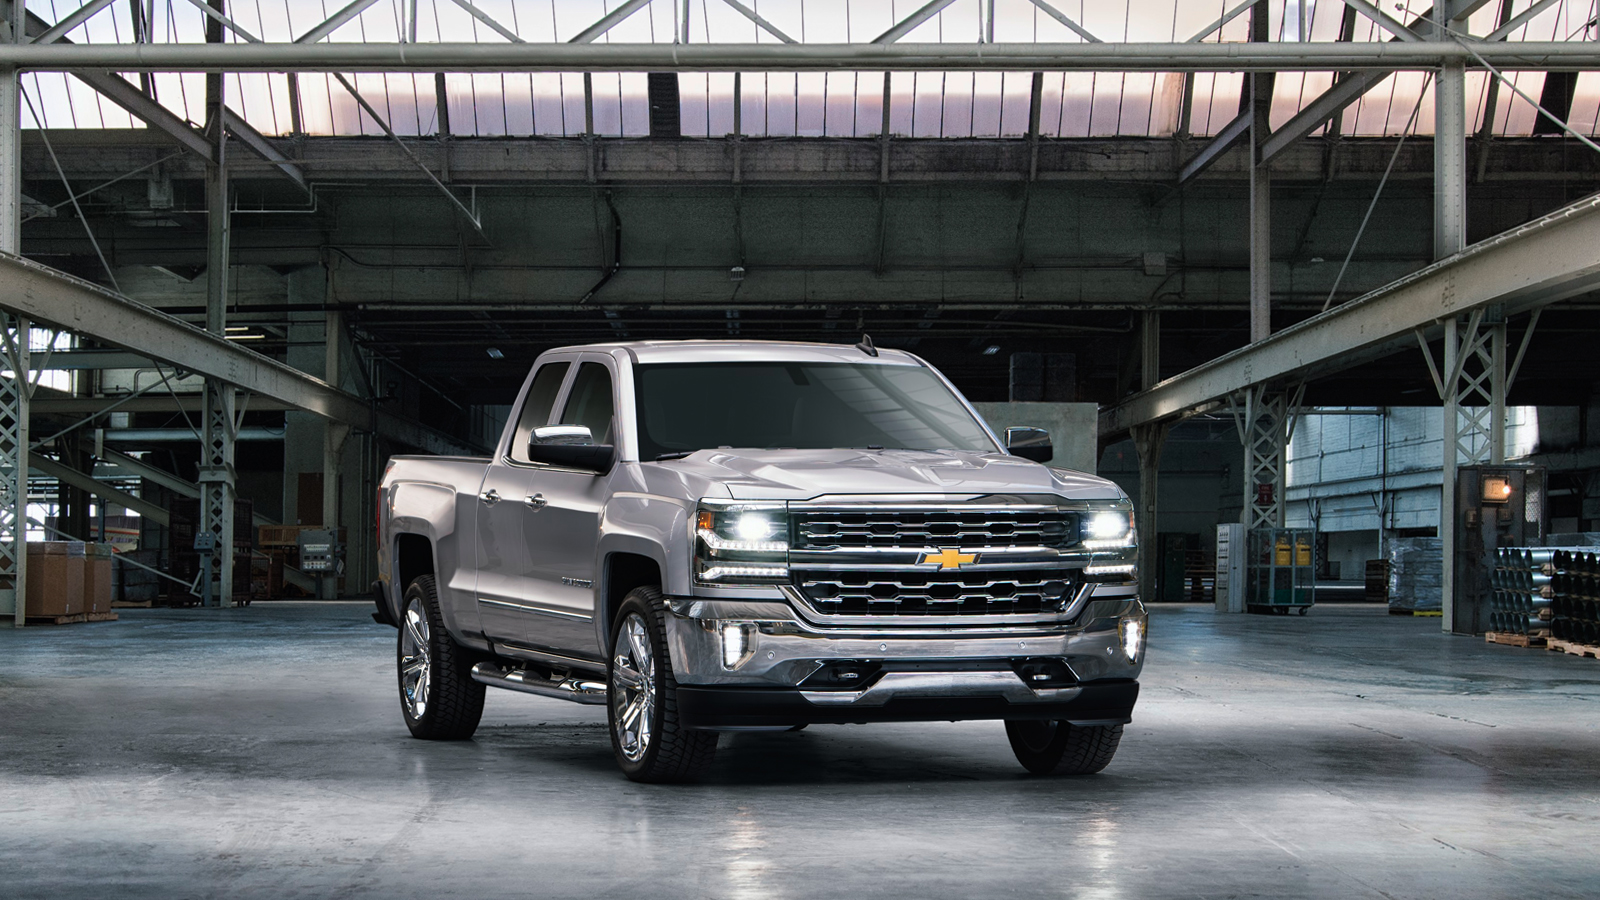 Chevrolet Silverado Impact Strength Engineering Overview And Demonstration Methodology